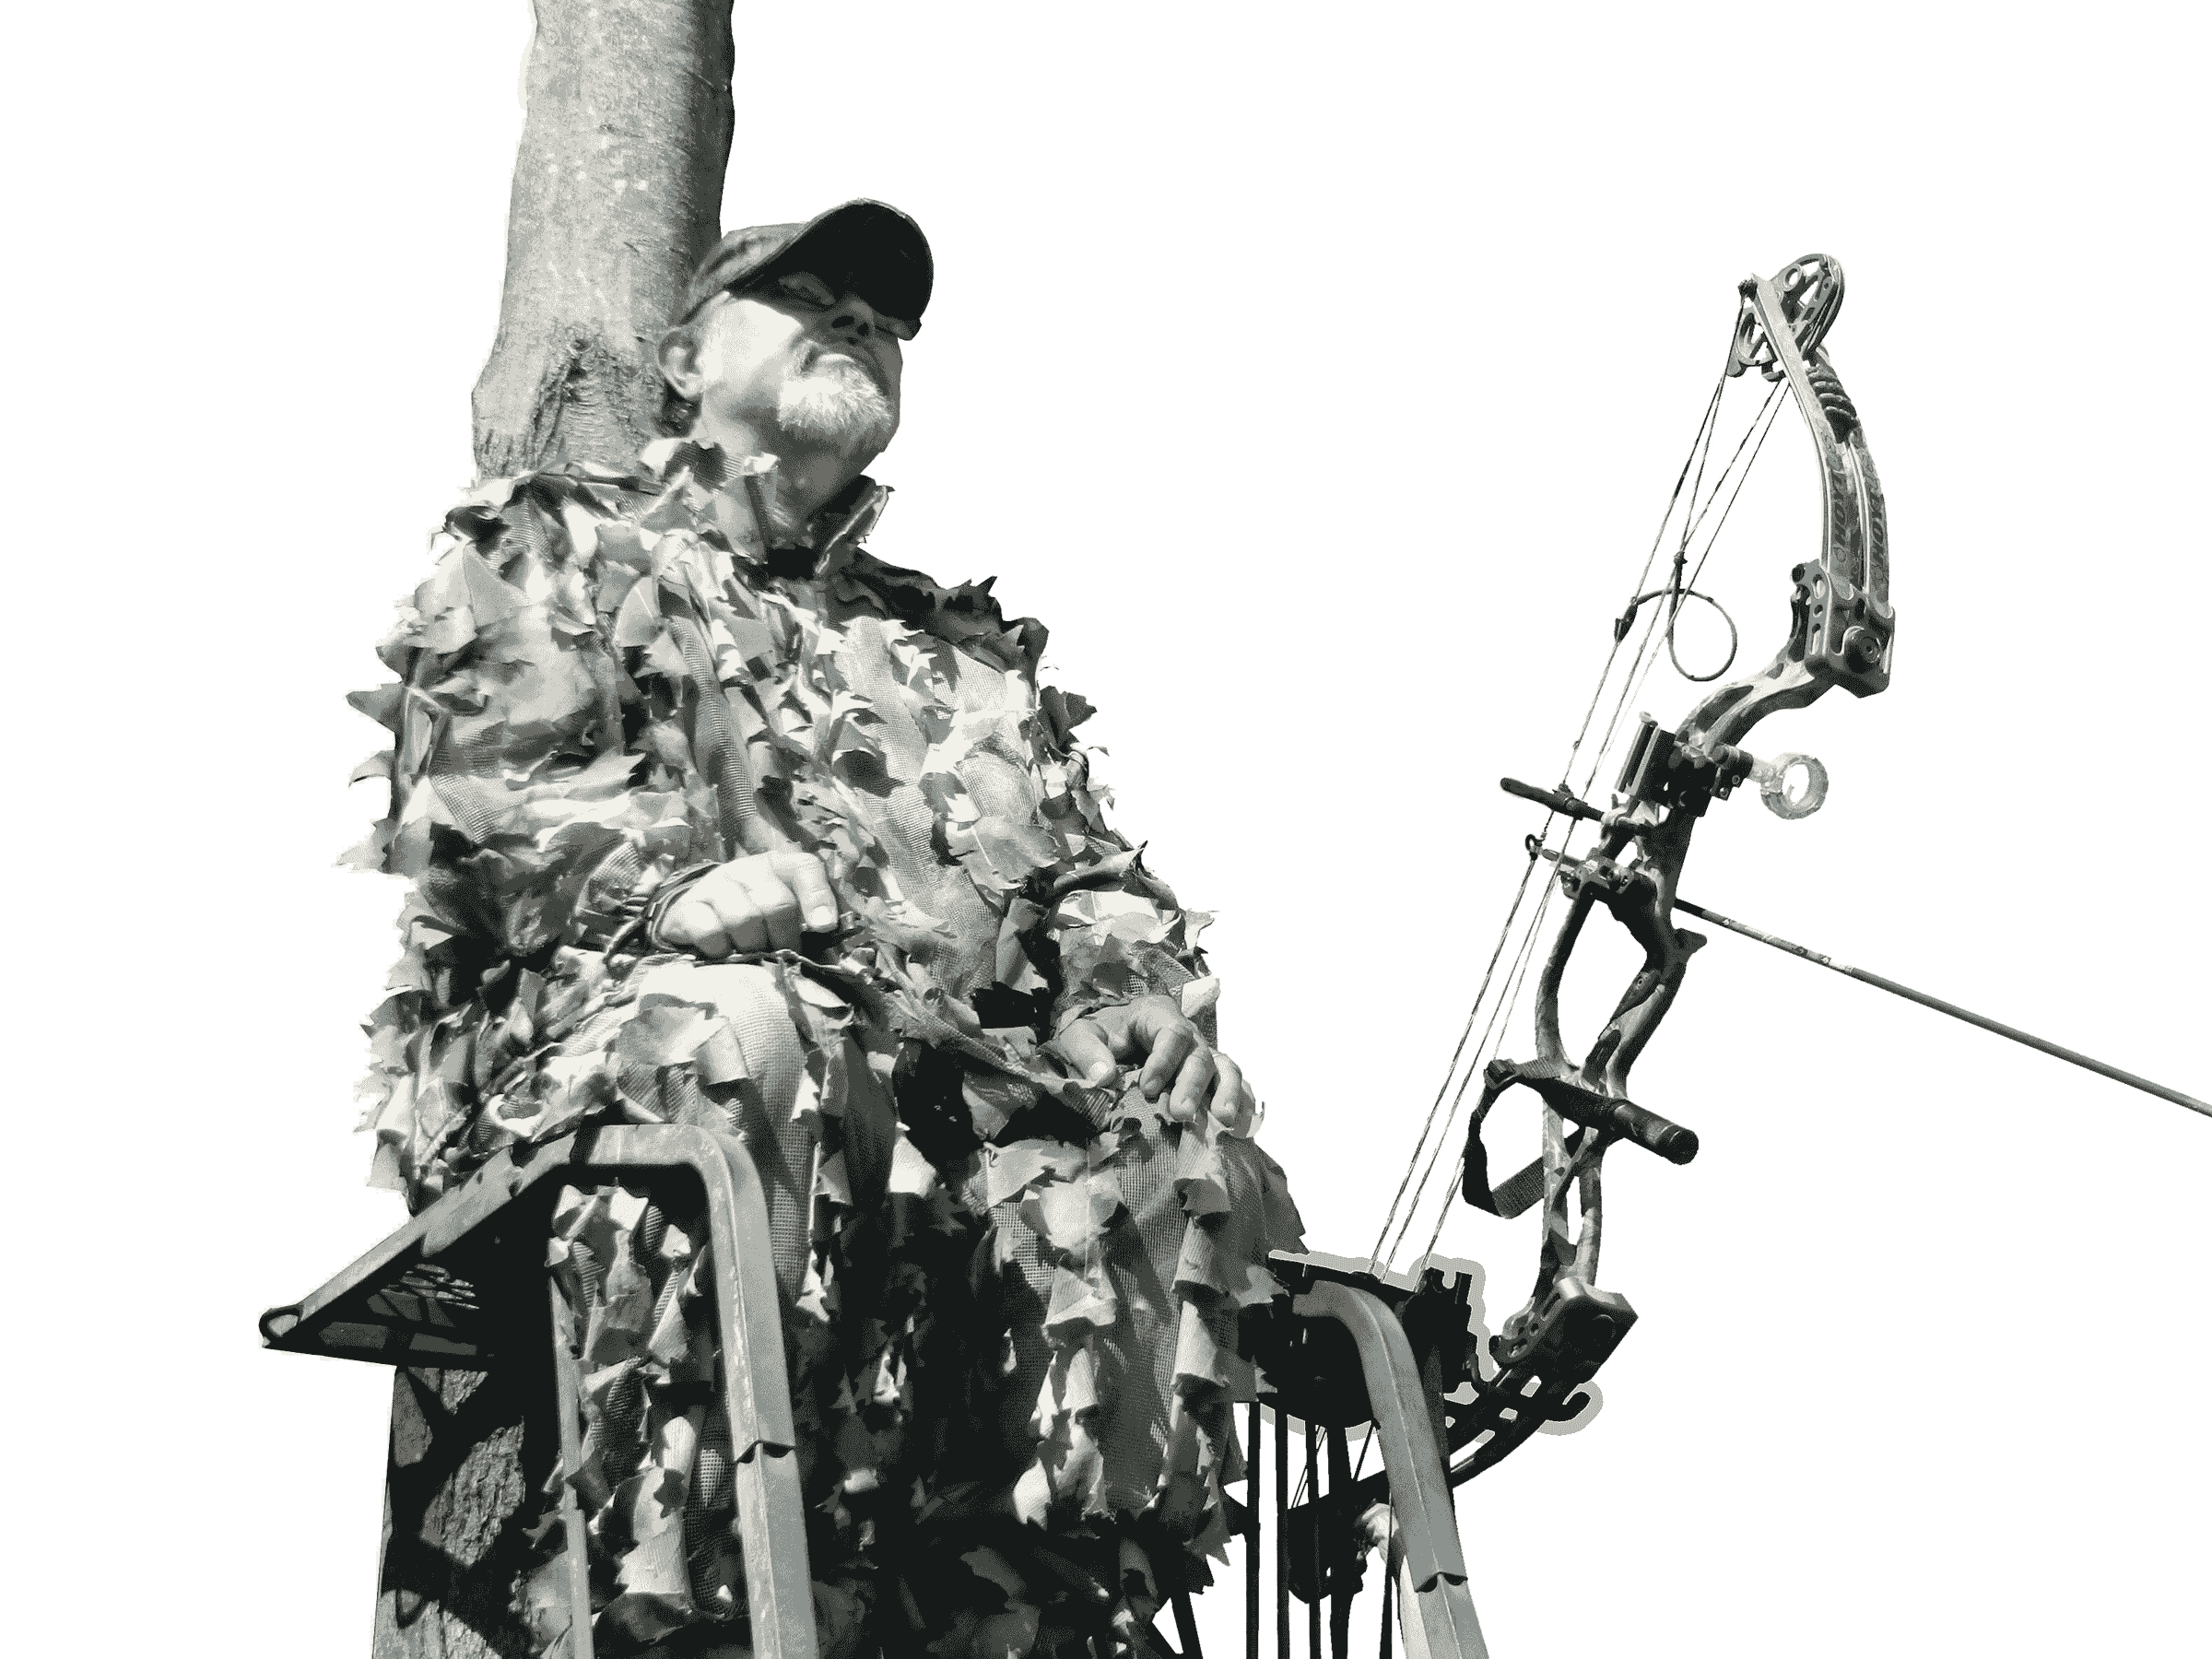 Hunter sitting in a tree stand with his bow in an adjustable Bow Holder attached to his stand